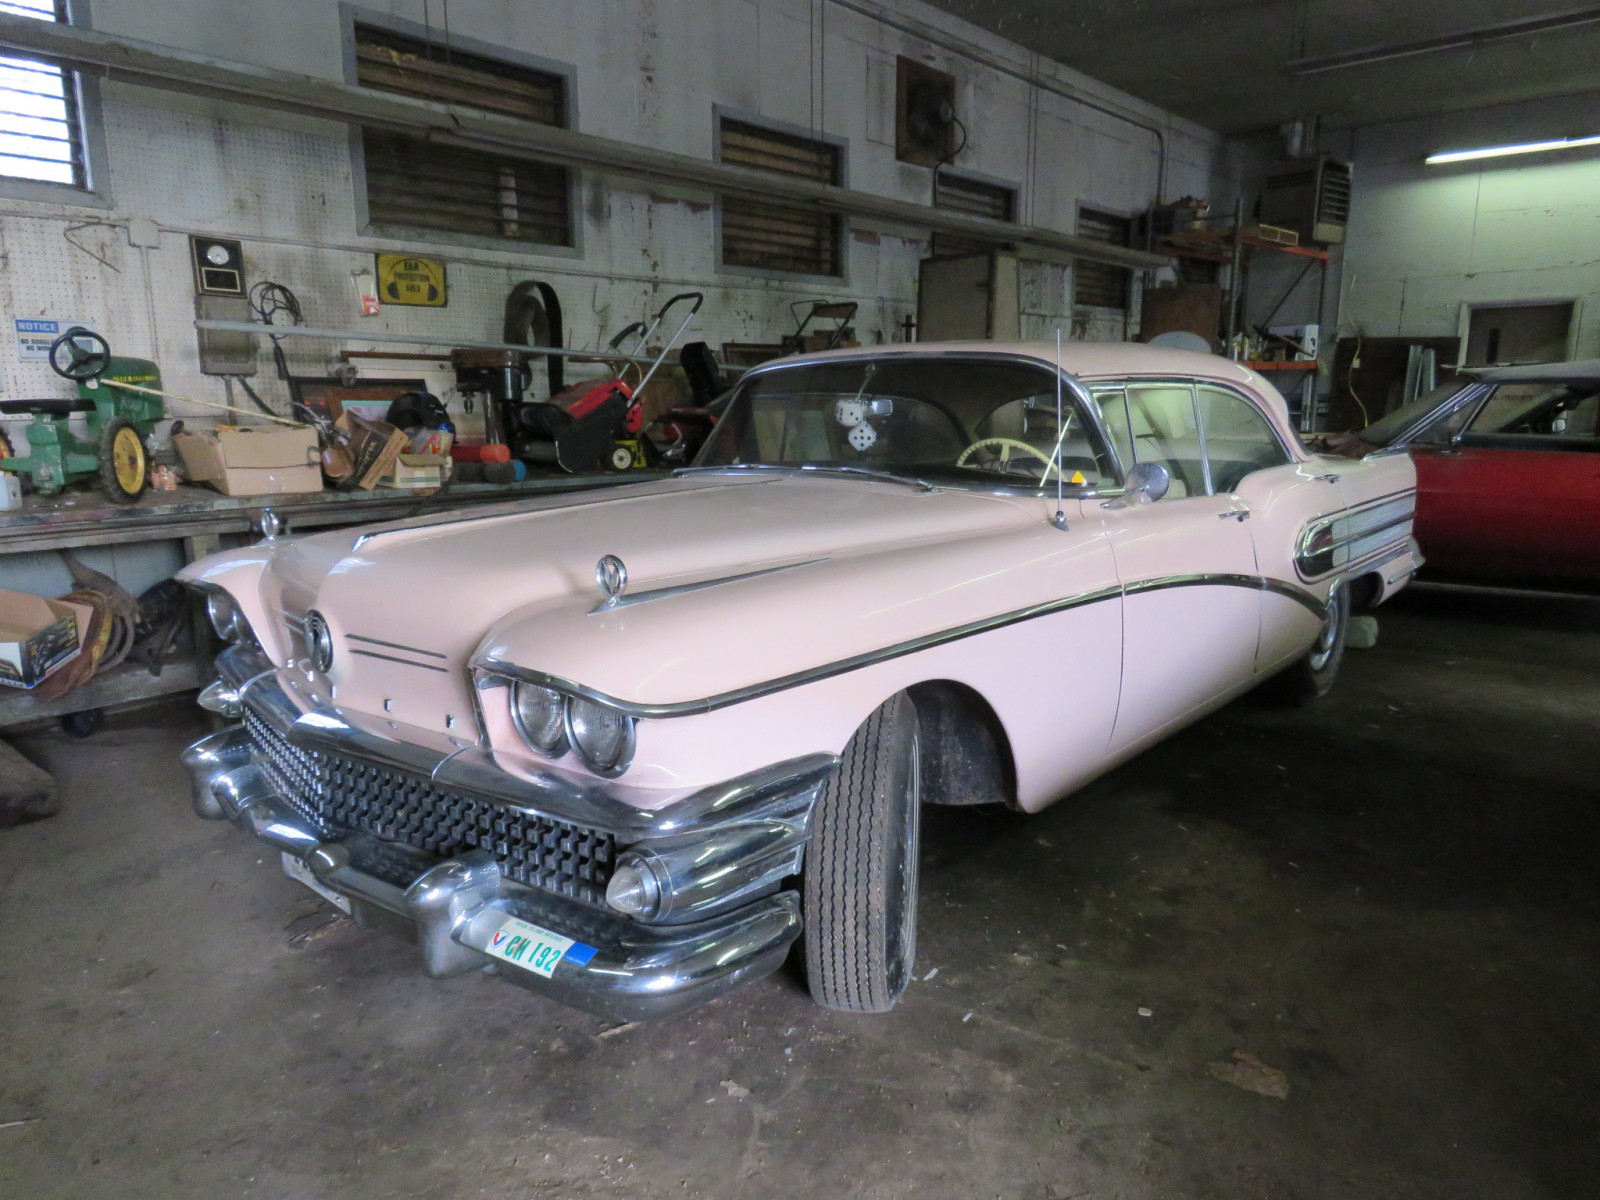 1958 Buick Special 4dr HT - Image 1